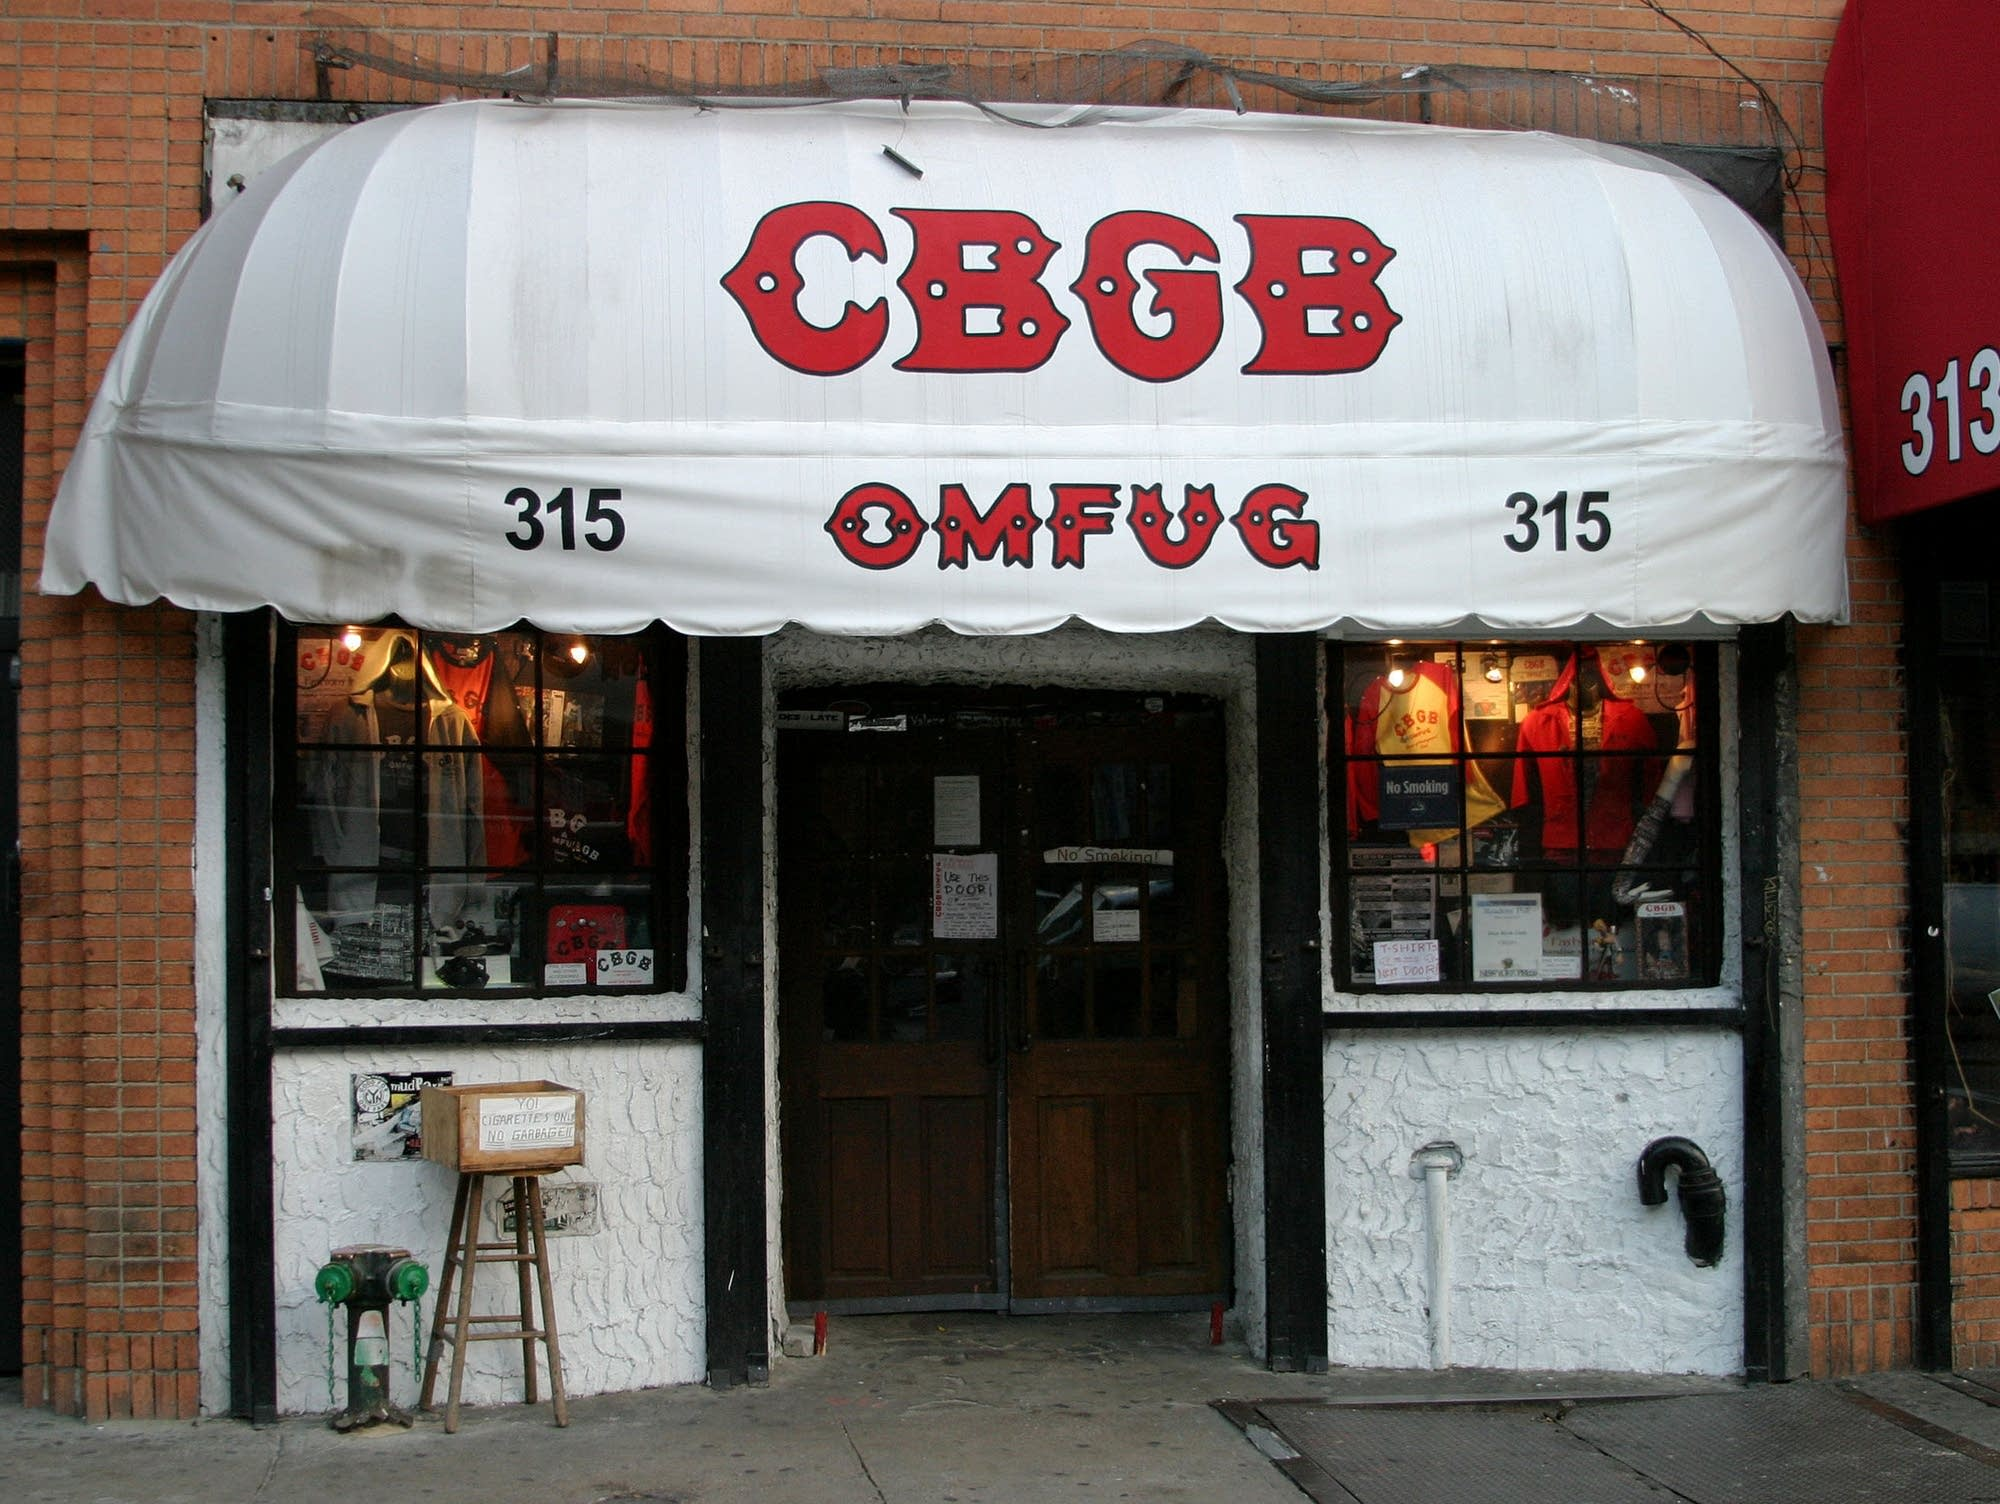 The exterior of CBGB as it appeared in 2003.